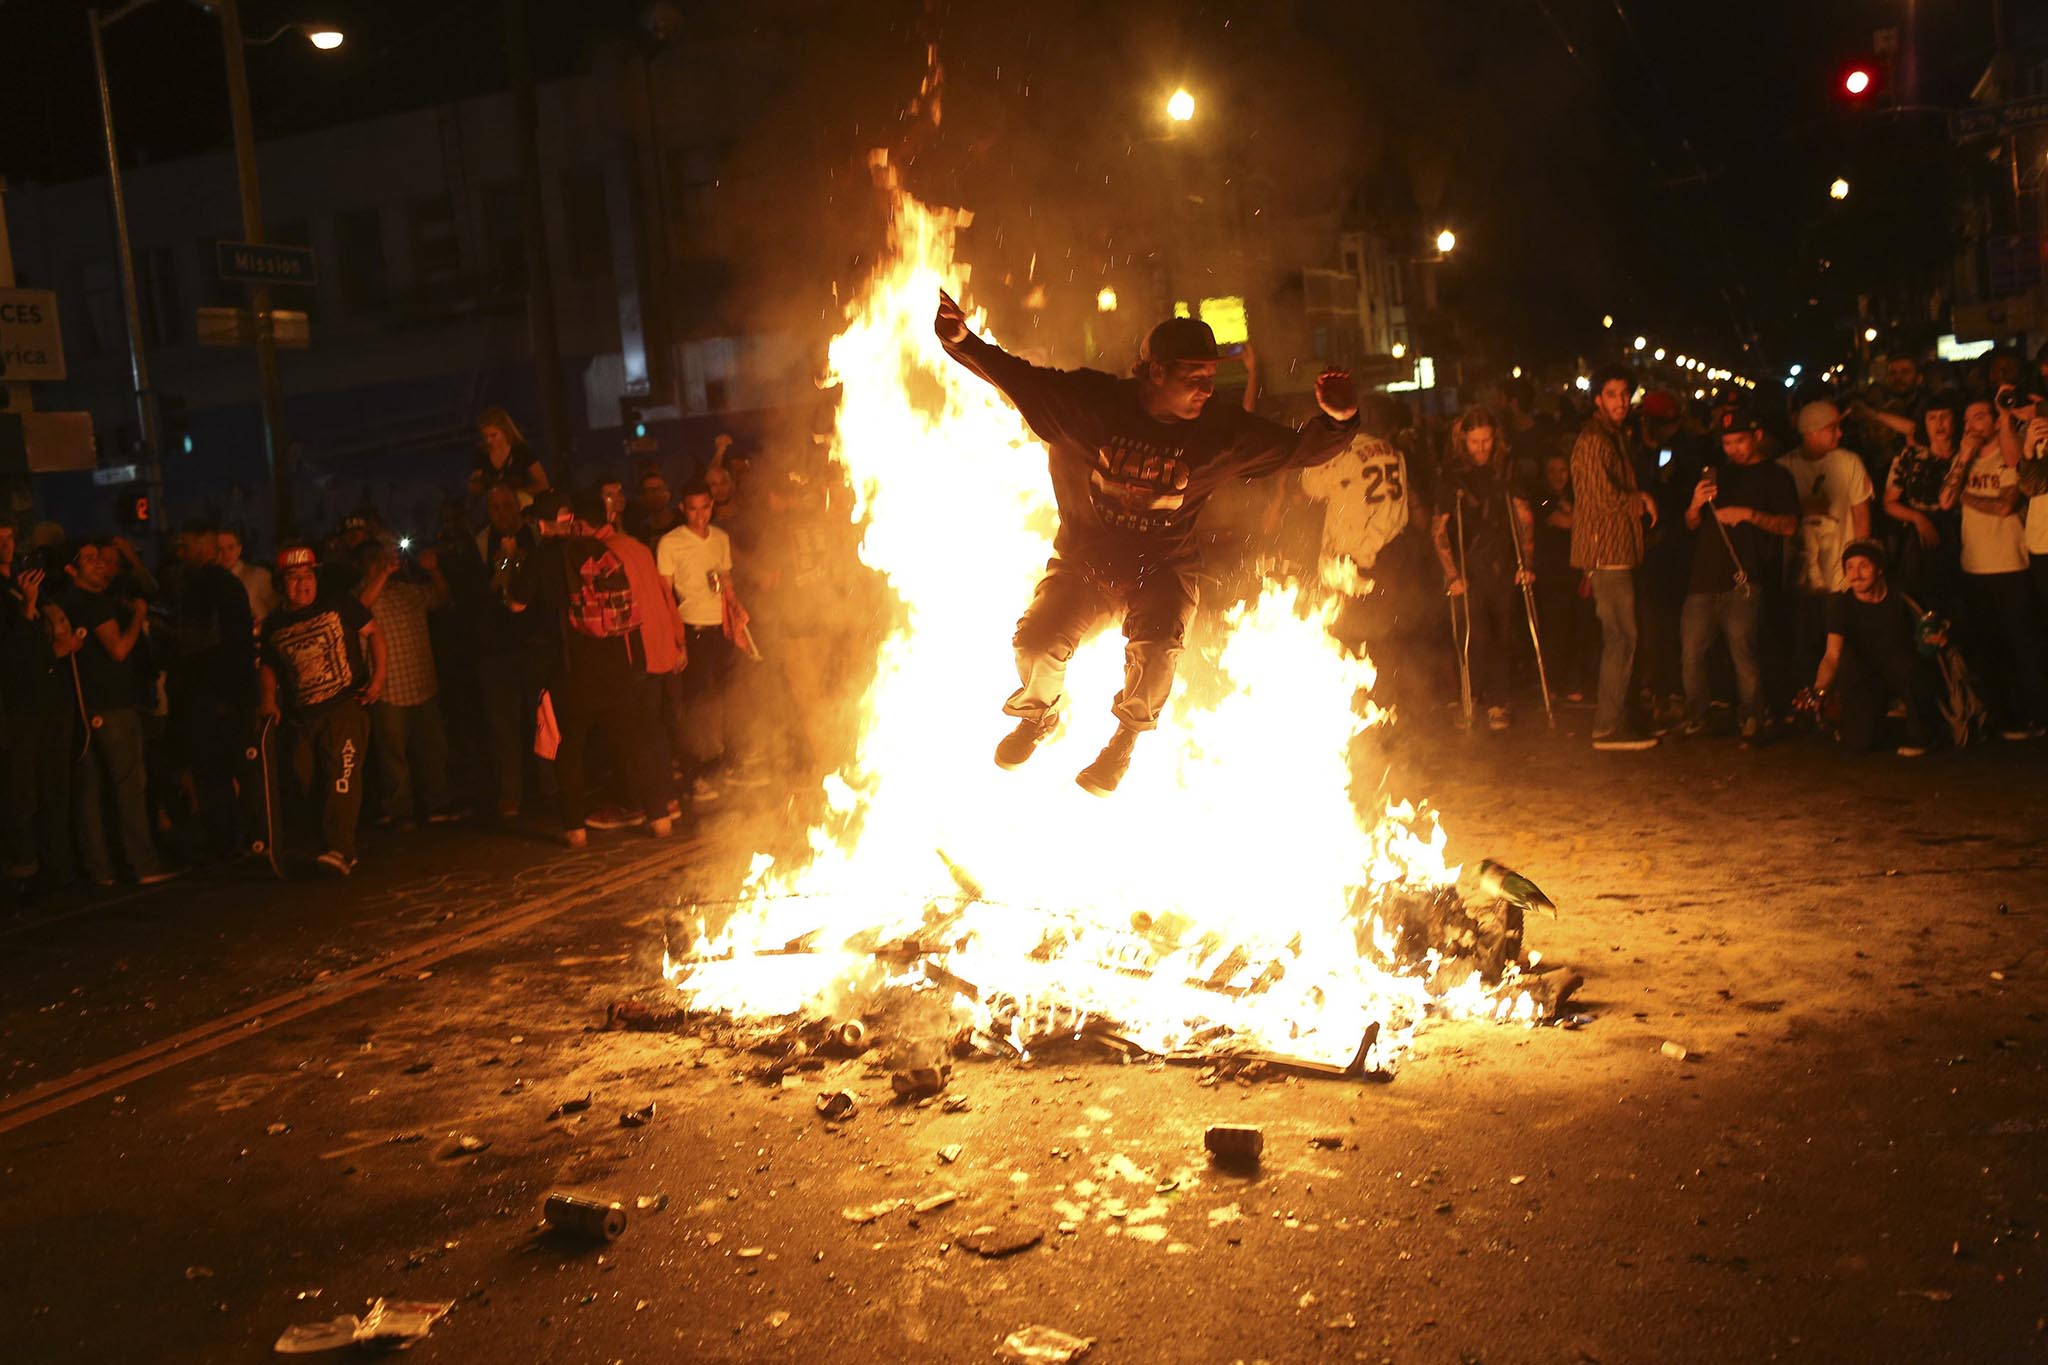 A man jumps through a fire along a street in the Mission District during a celebration after the San Francisco Giants defeated the Kansas City Royals in Game 7 of the World Series, in San Francisco, California